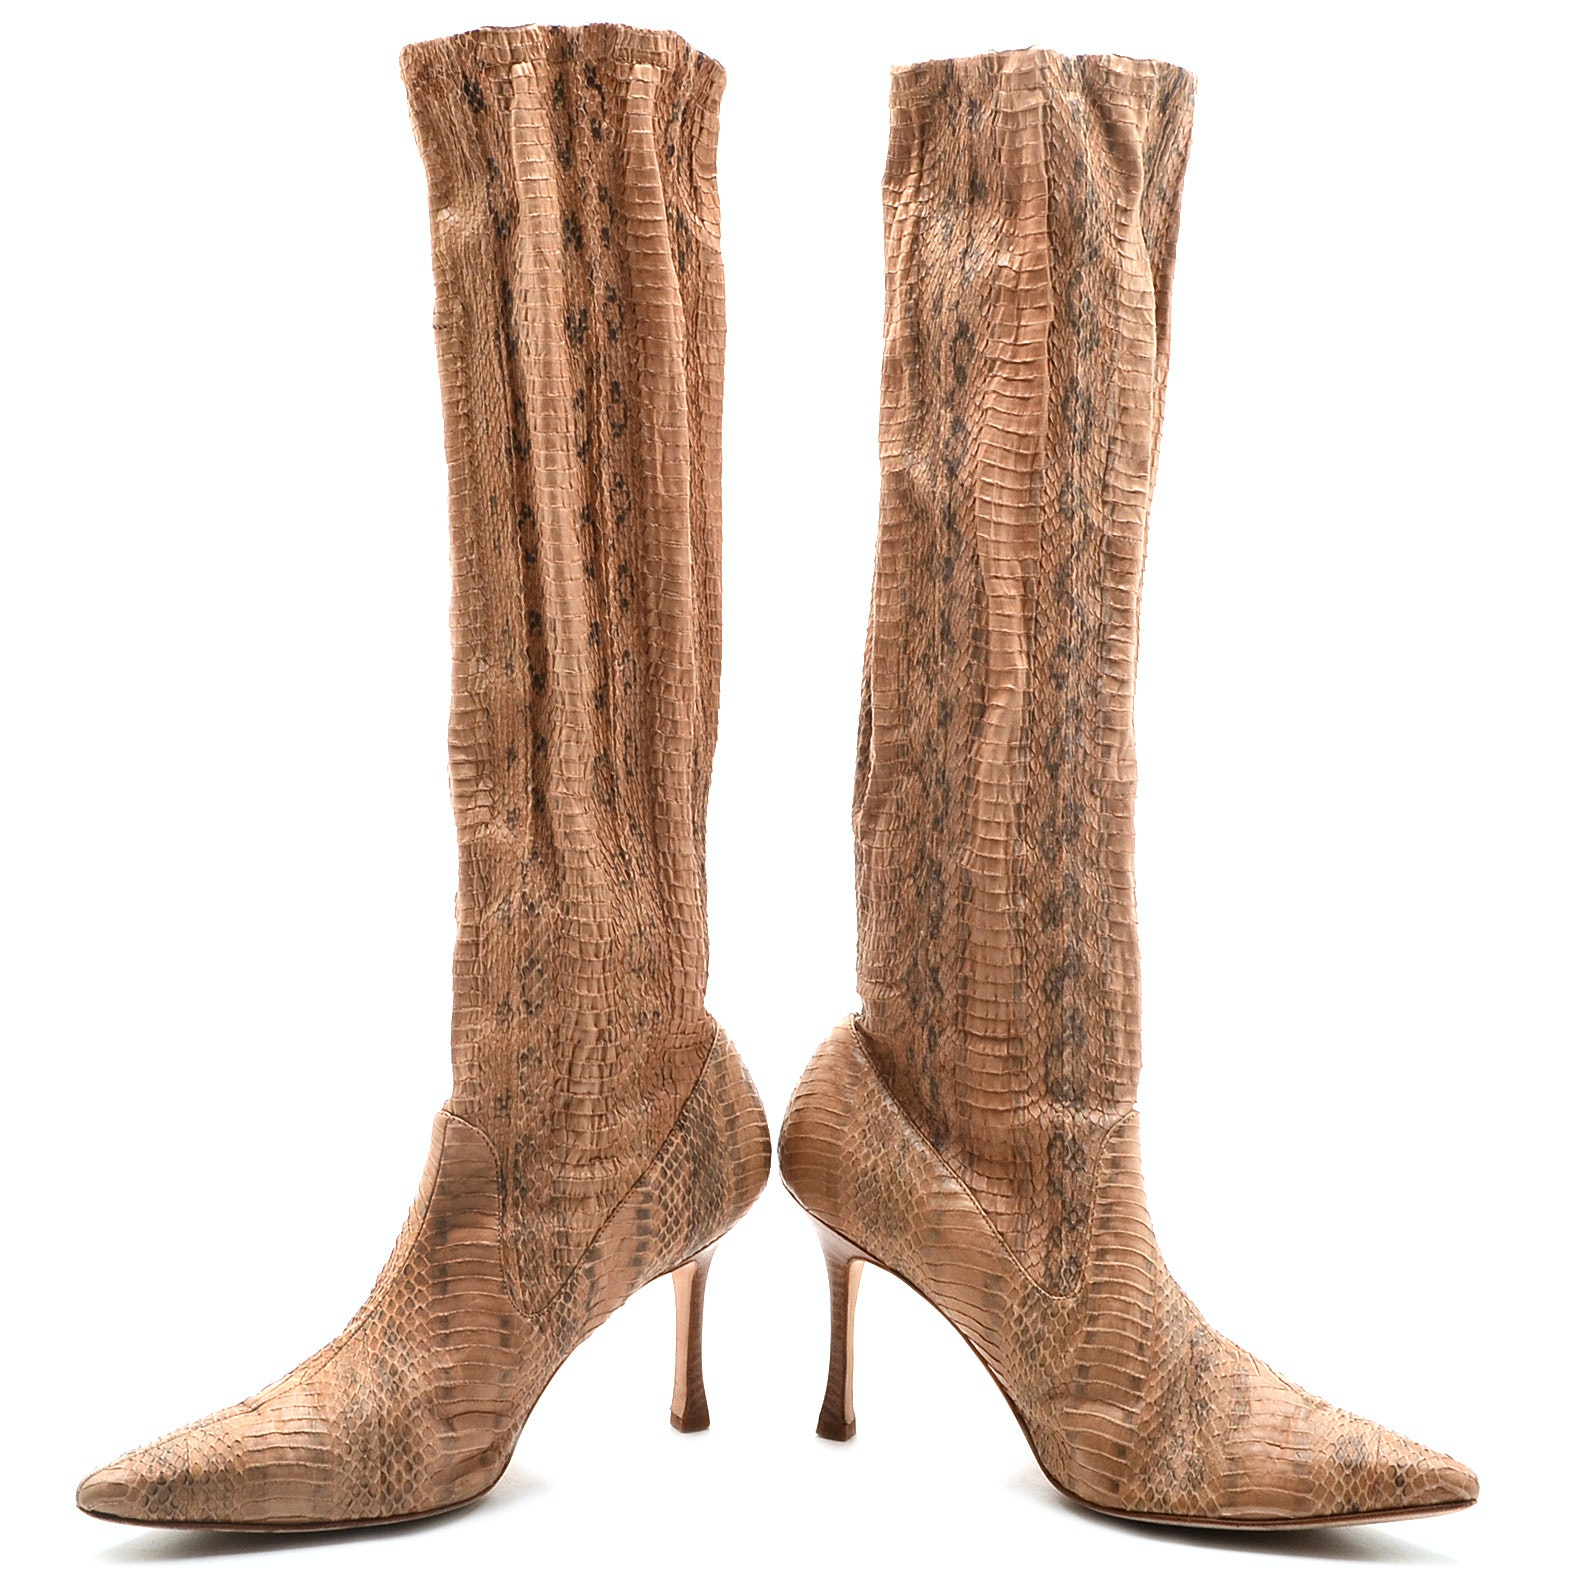 Pair of Manolo Blahnik Snakeskin Embossed Faux Leather Below-The-Knee Pull-Up Boots